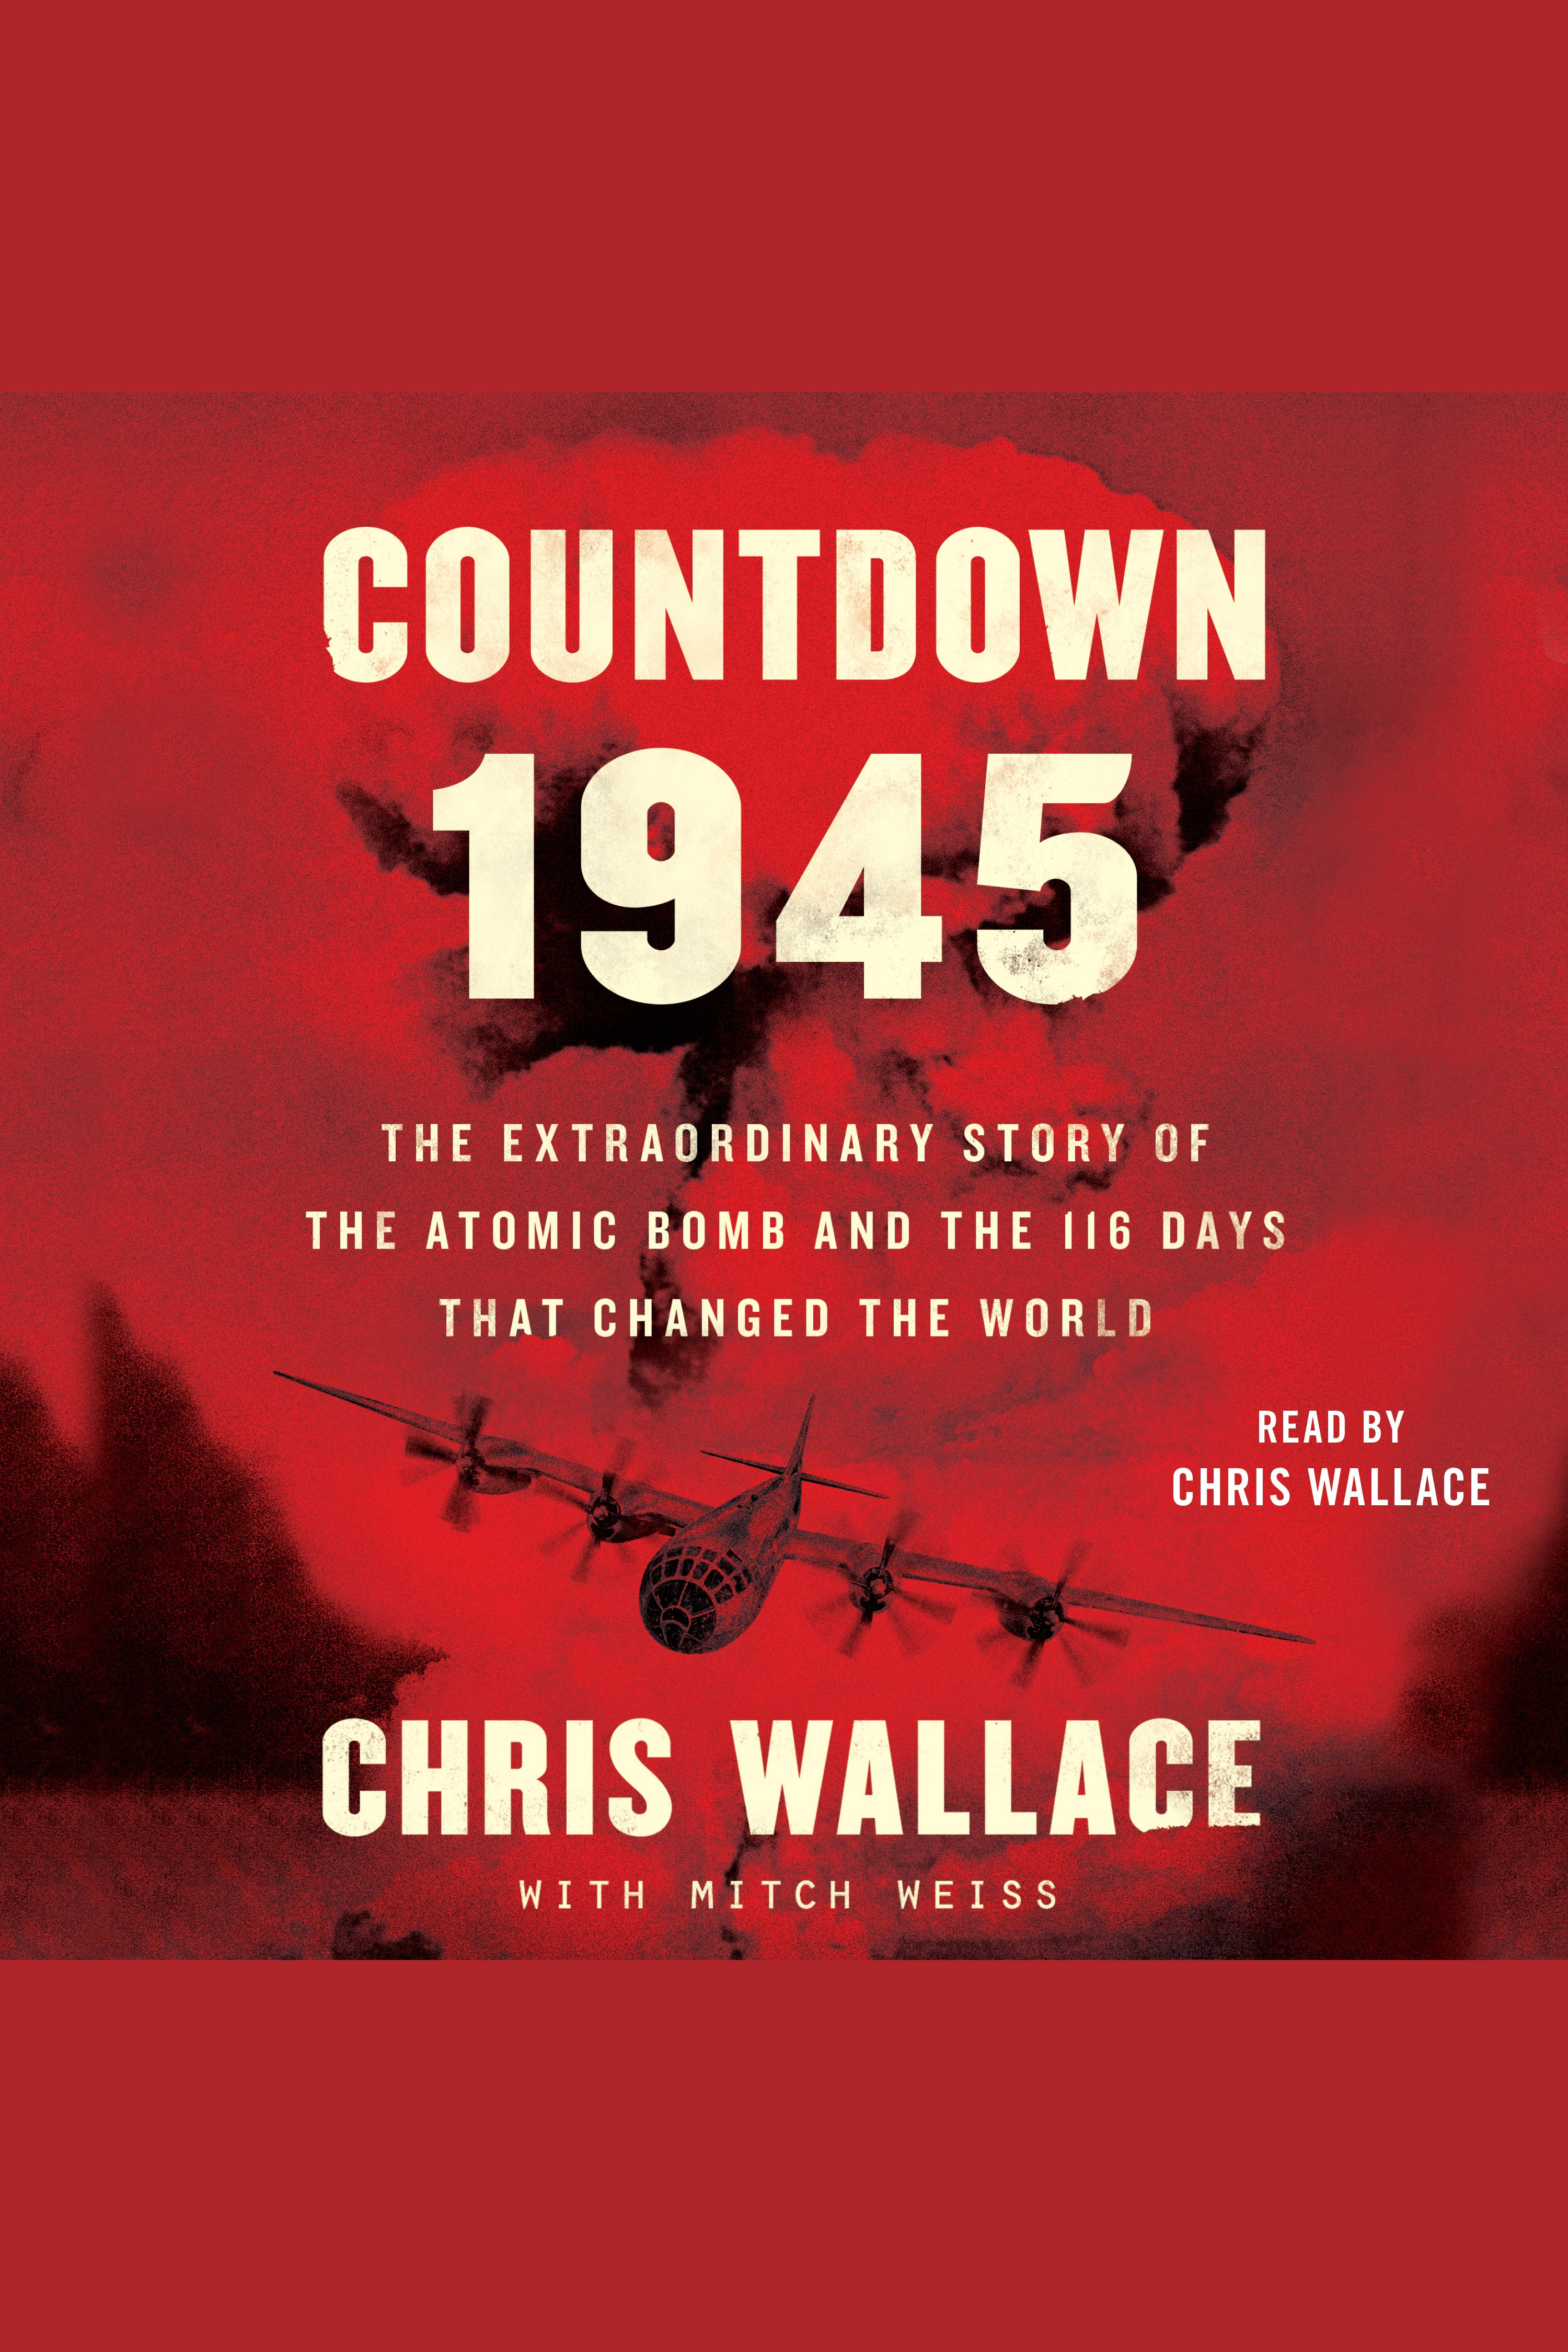 Countdown 1945 The Extraordinary Story of the 116 Days that Changed the World